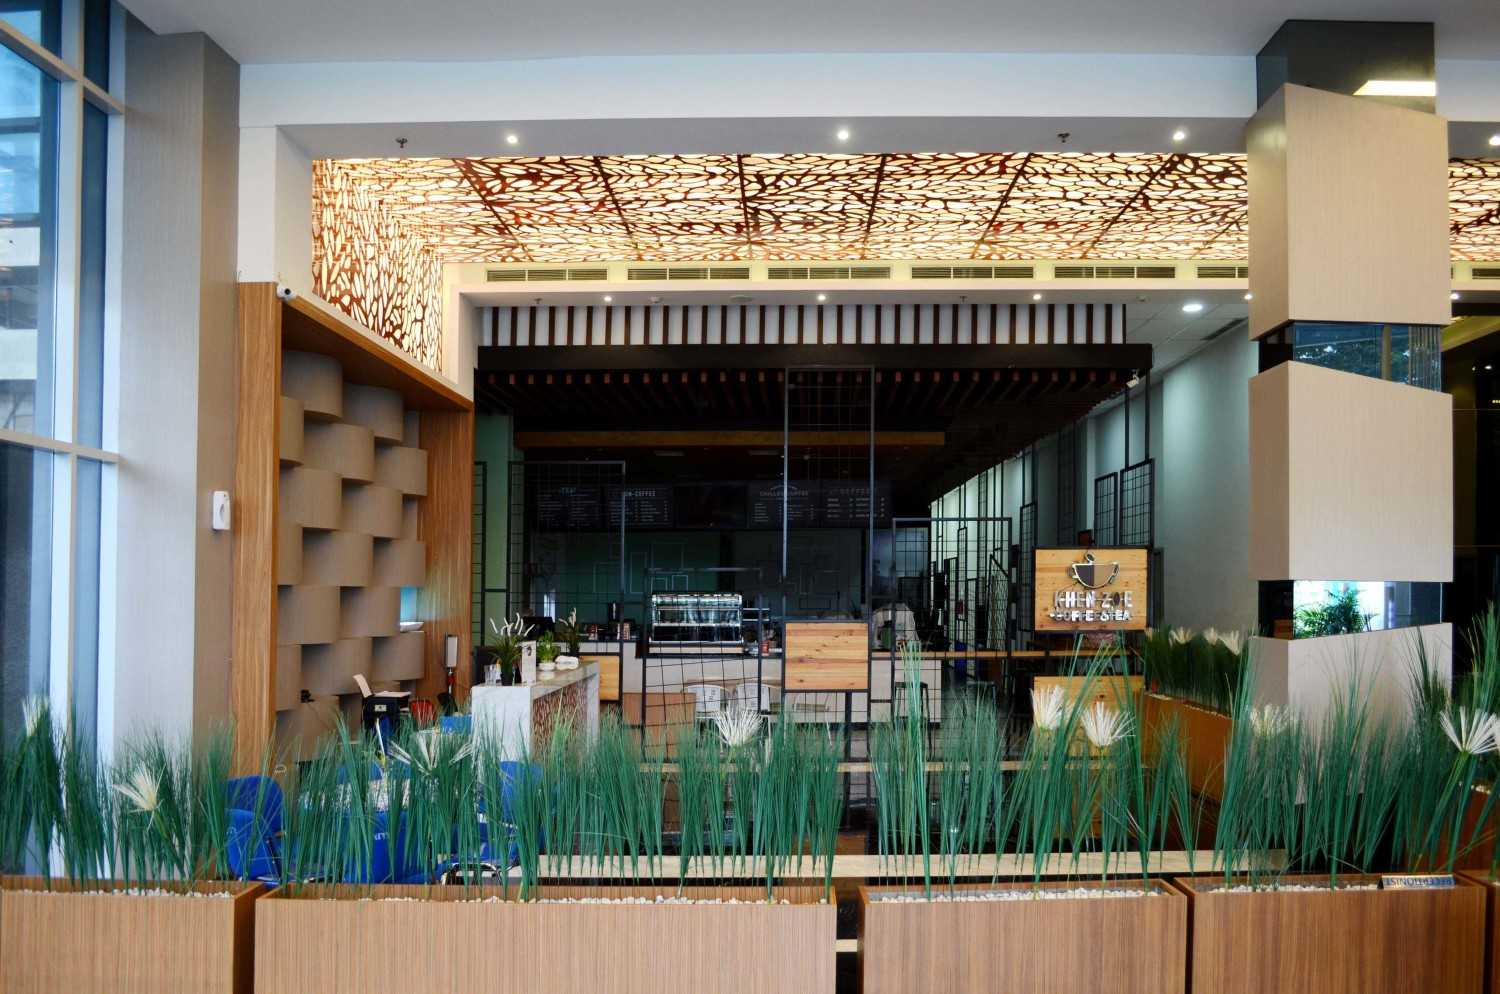 Jasa Design and Build X3M ARCHITECTS di Tangerang Selatan